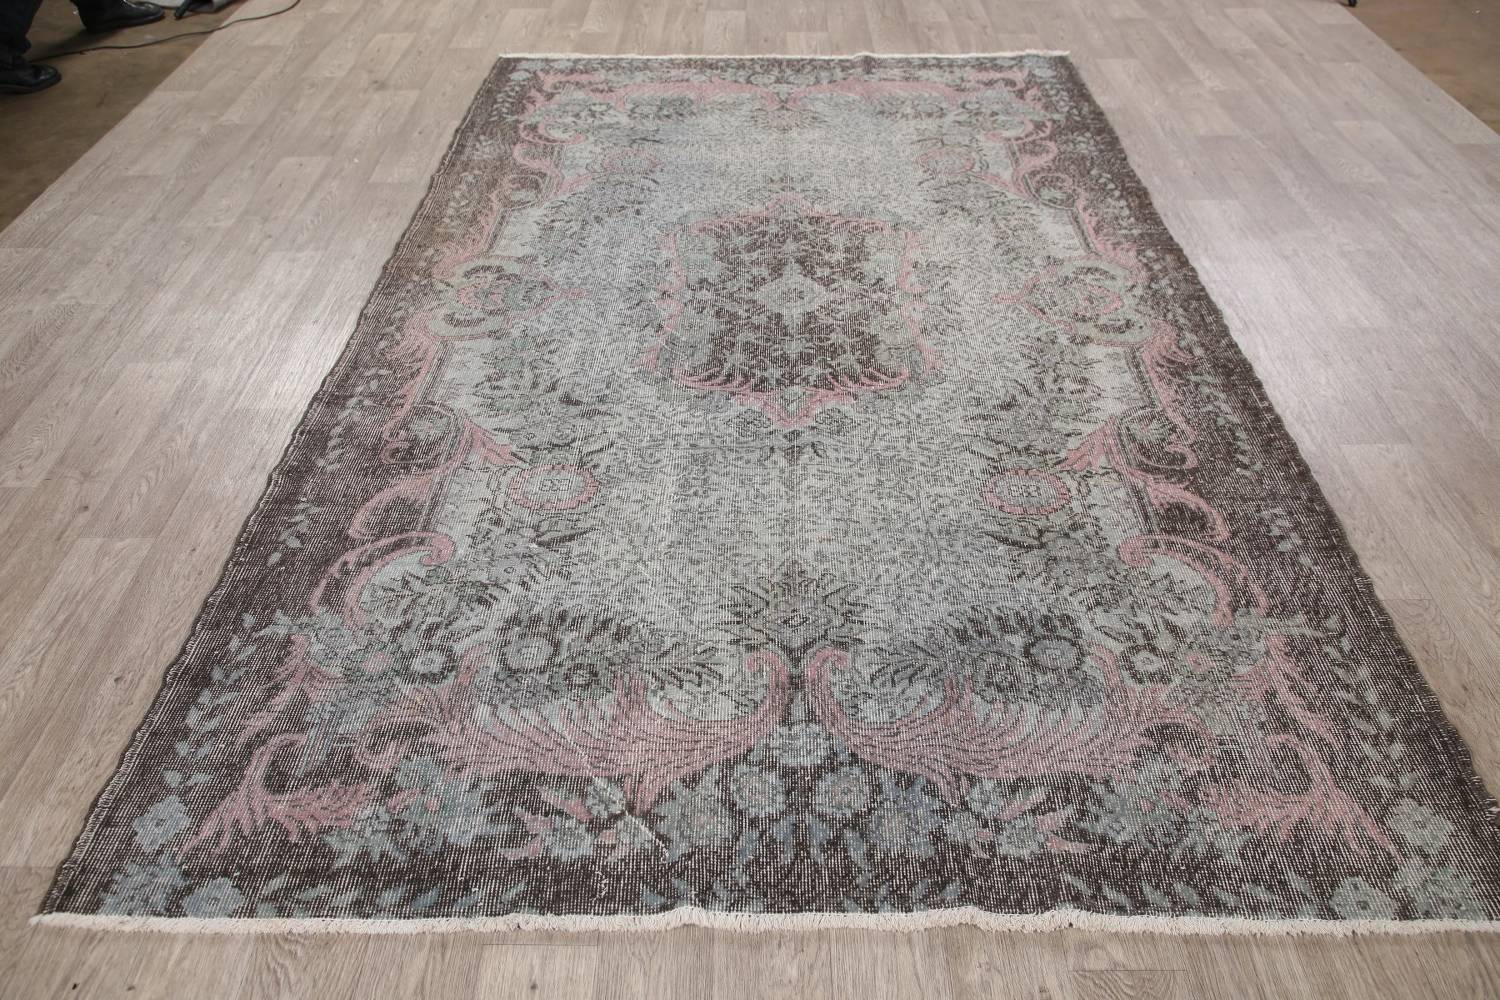 Antique Muted Distressed Aubusson Oriental Area Rug 6x10 image 16